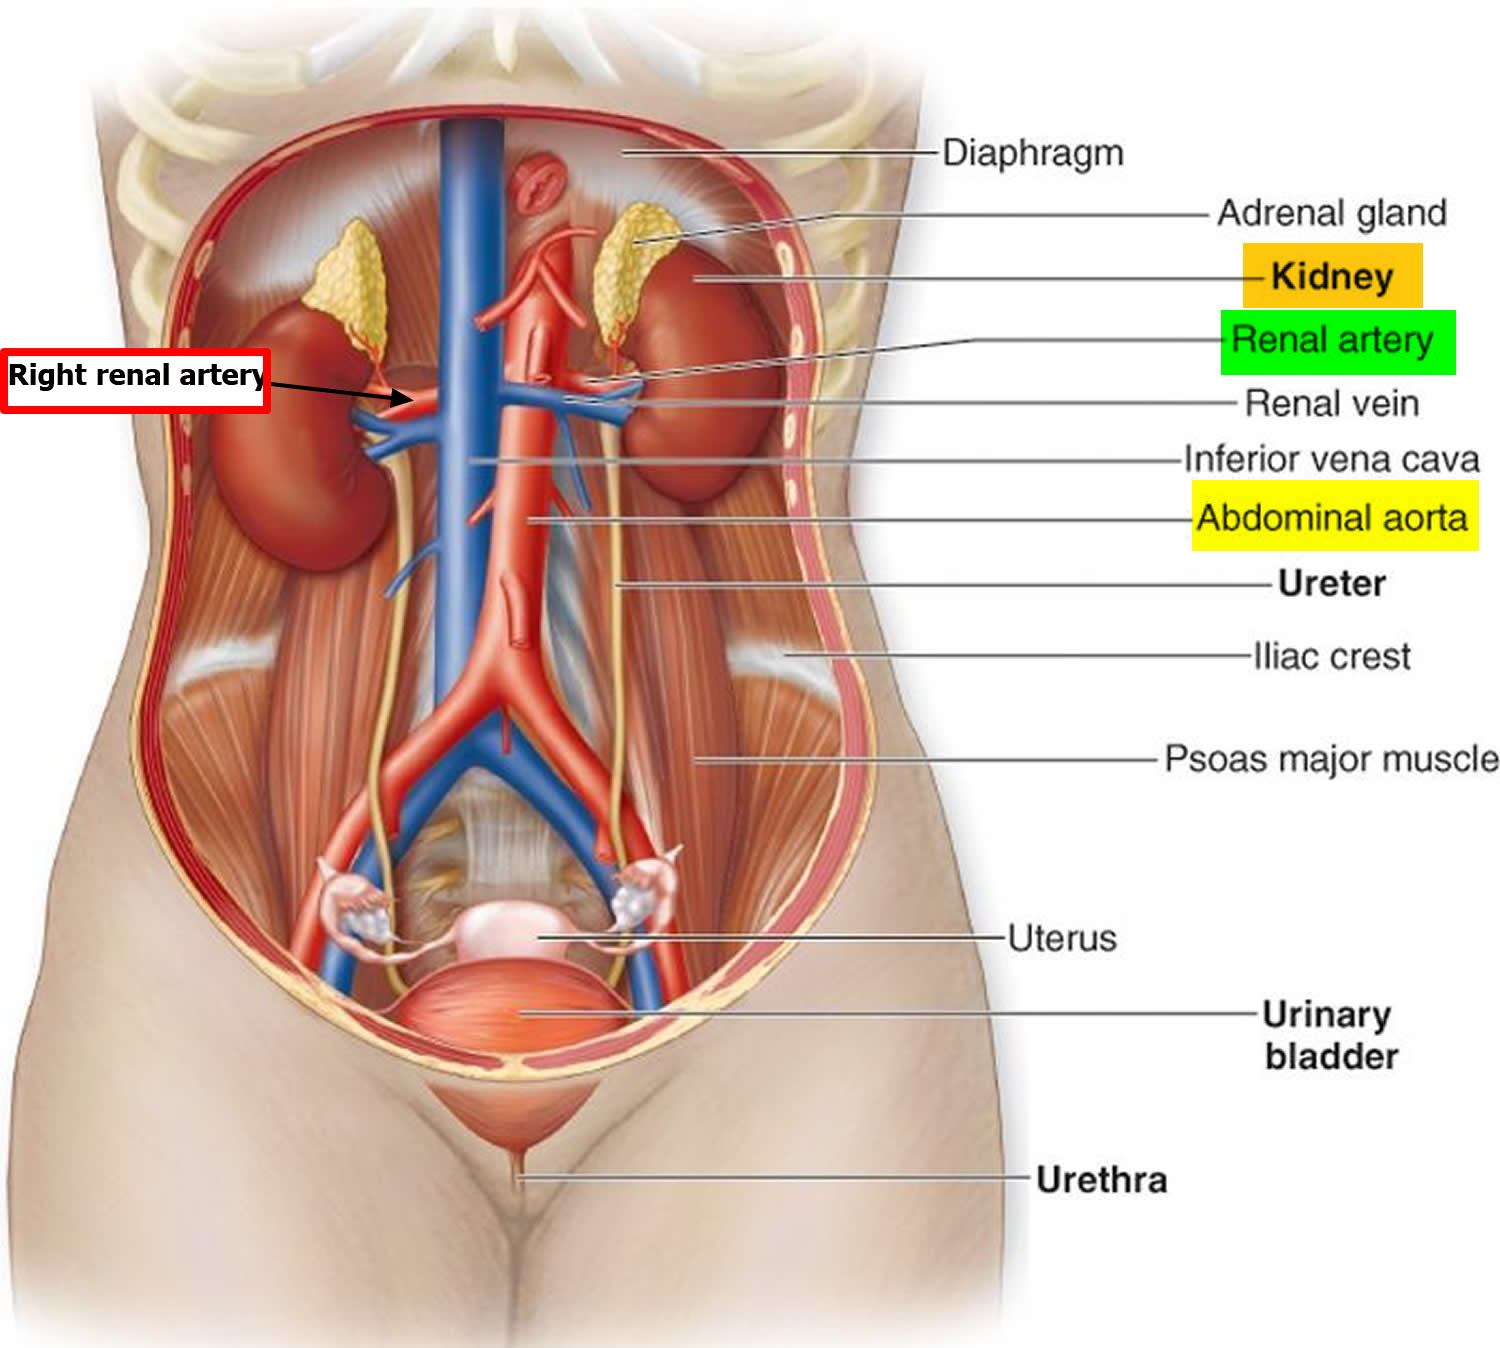 renal artery location